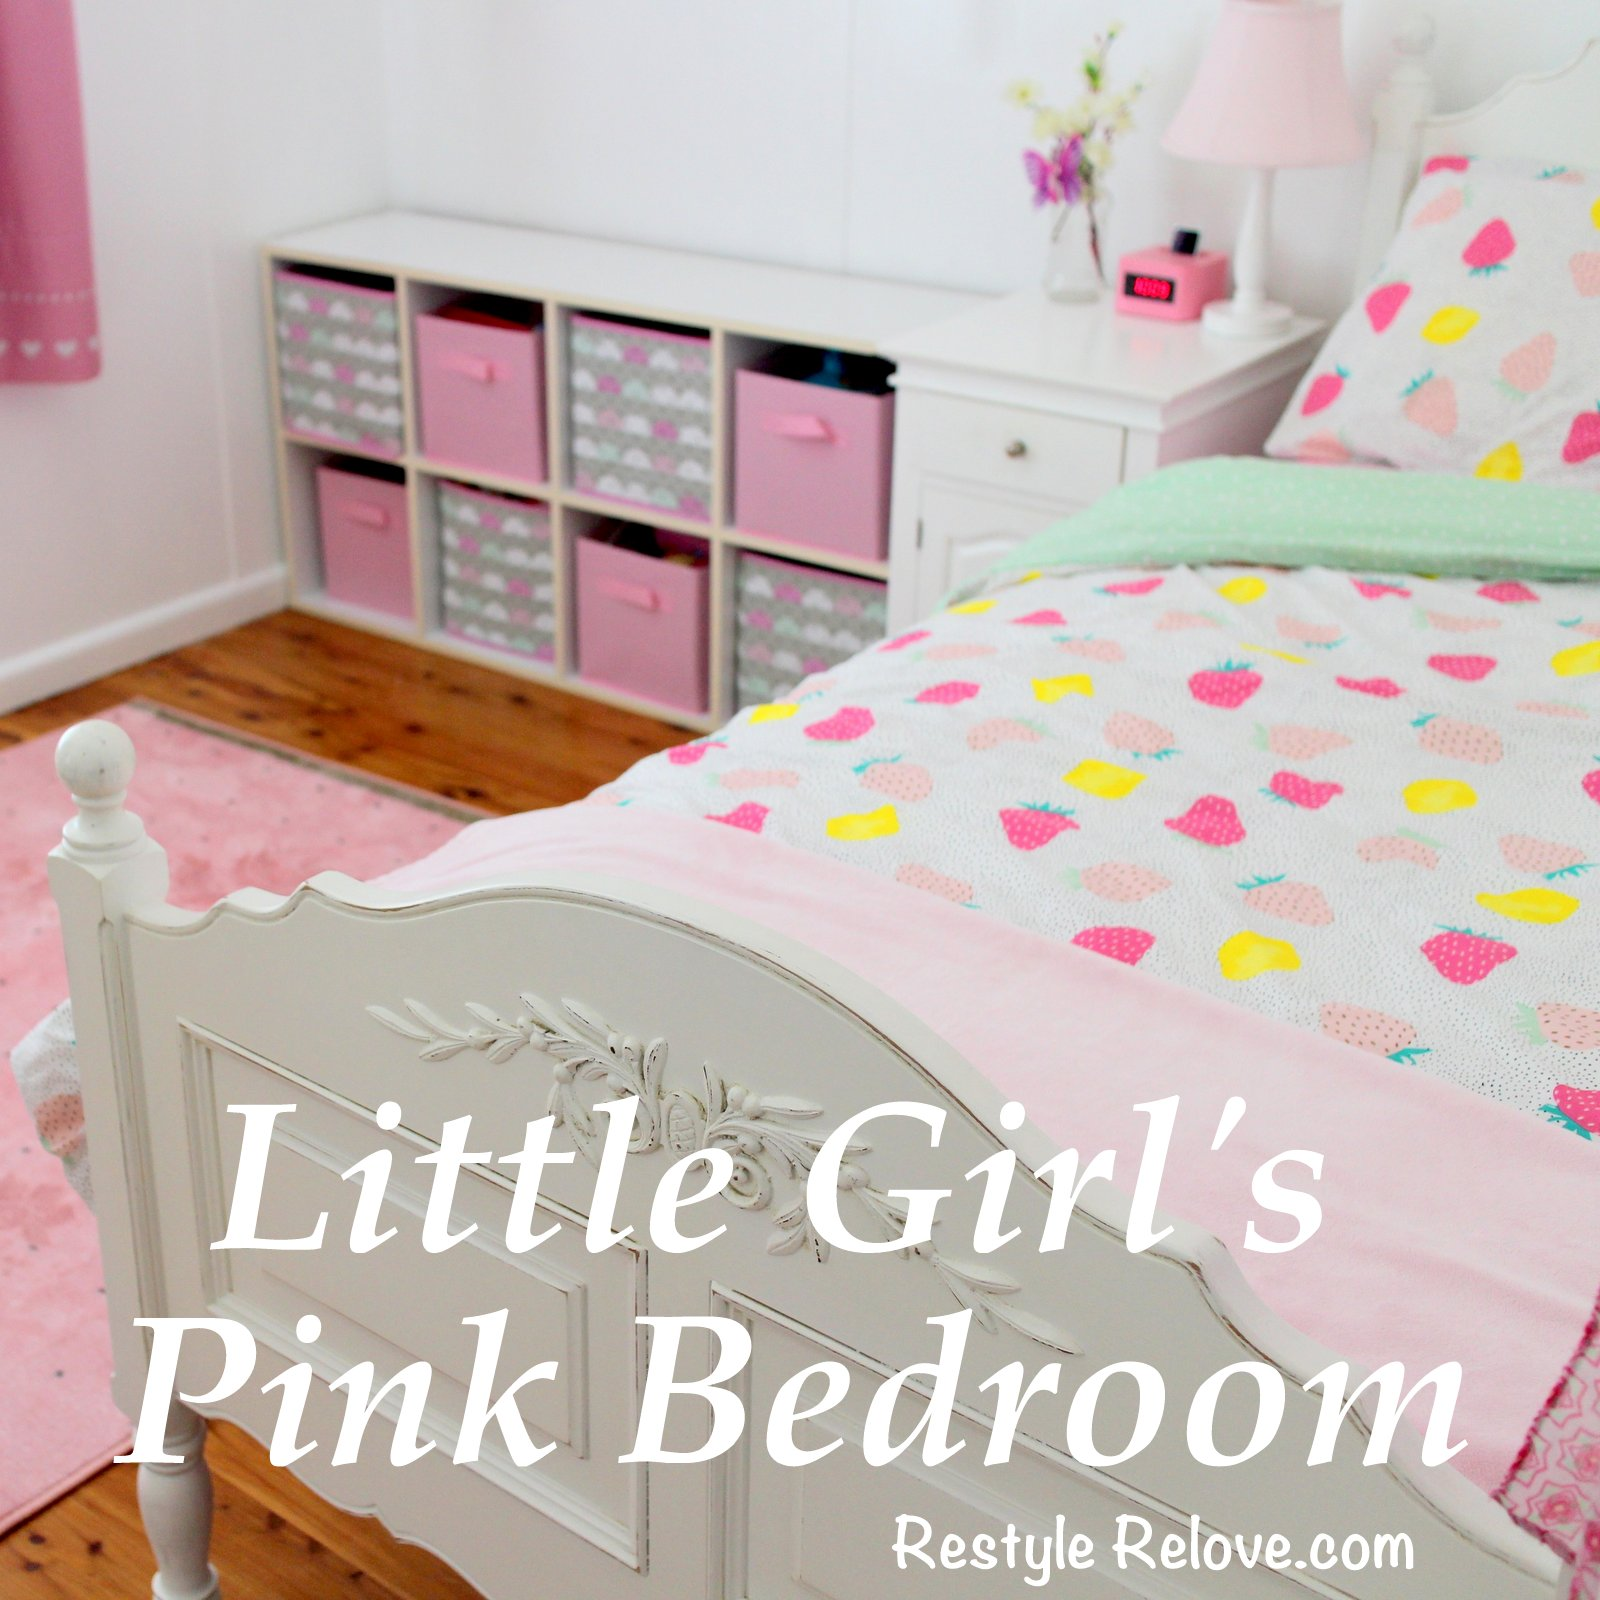 Pink bedrooms for little girls - Little Girl S Pink Bedroom